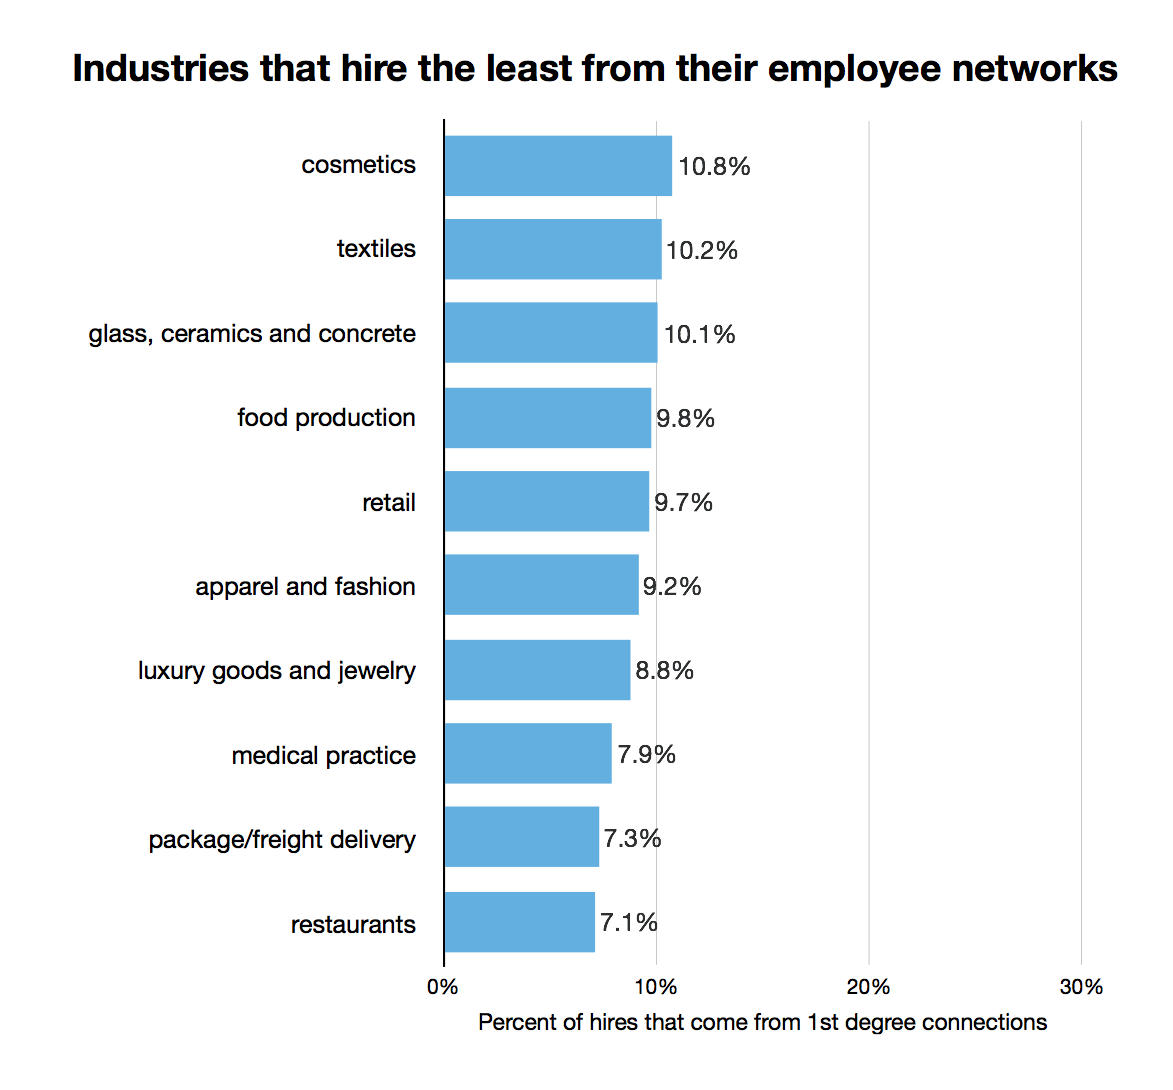 industries-that-higher-least-from-first-degree